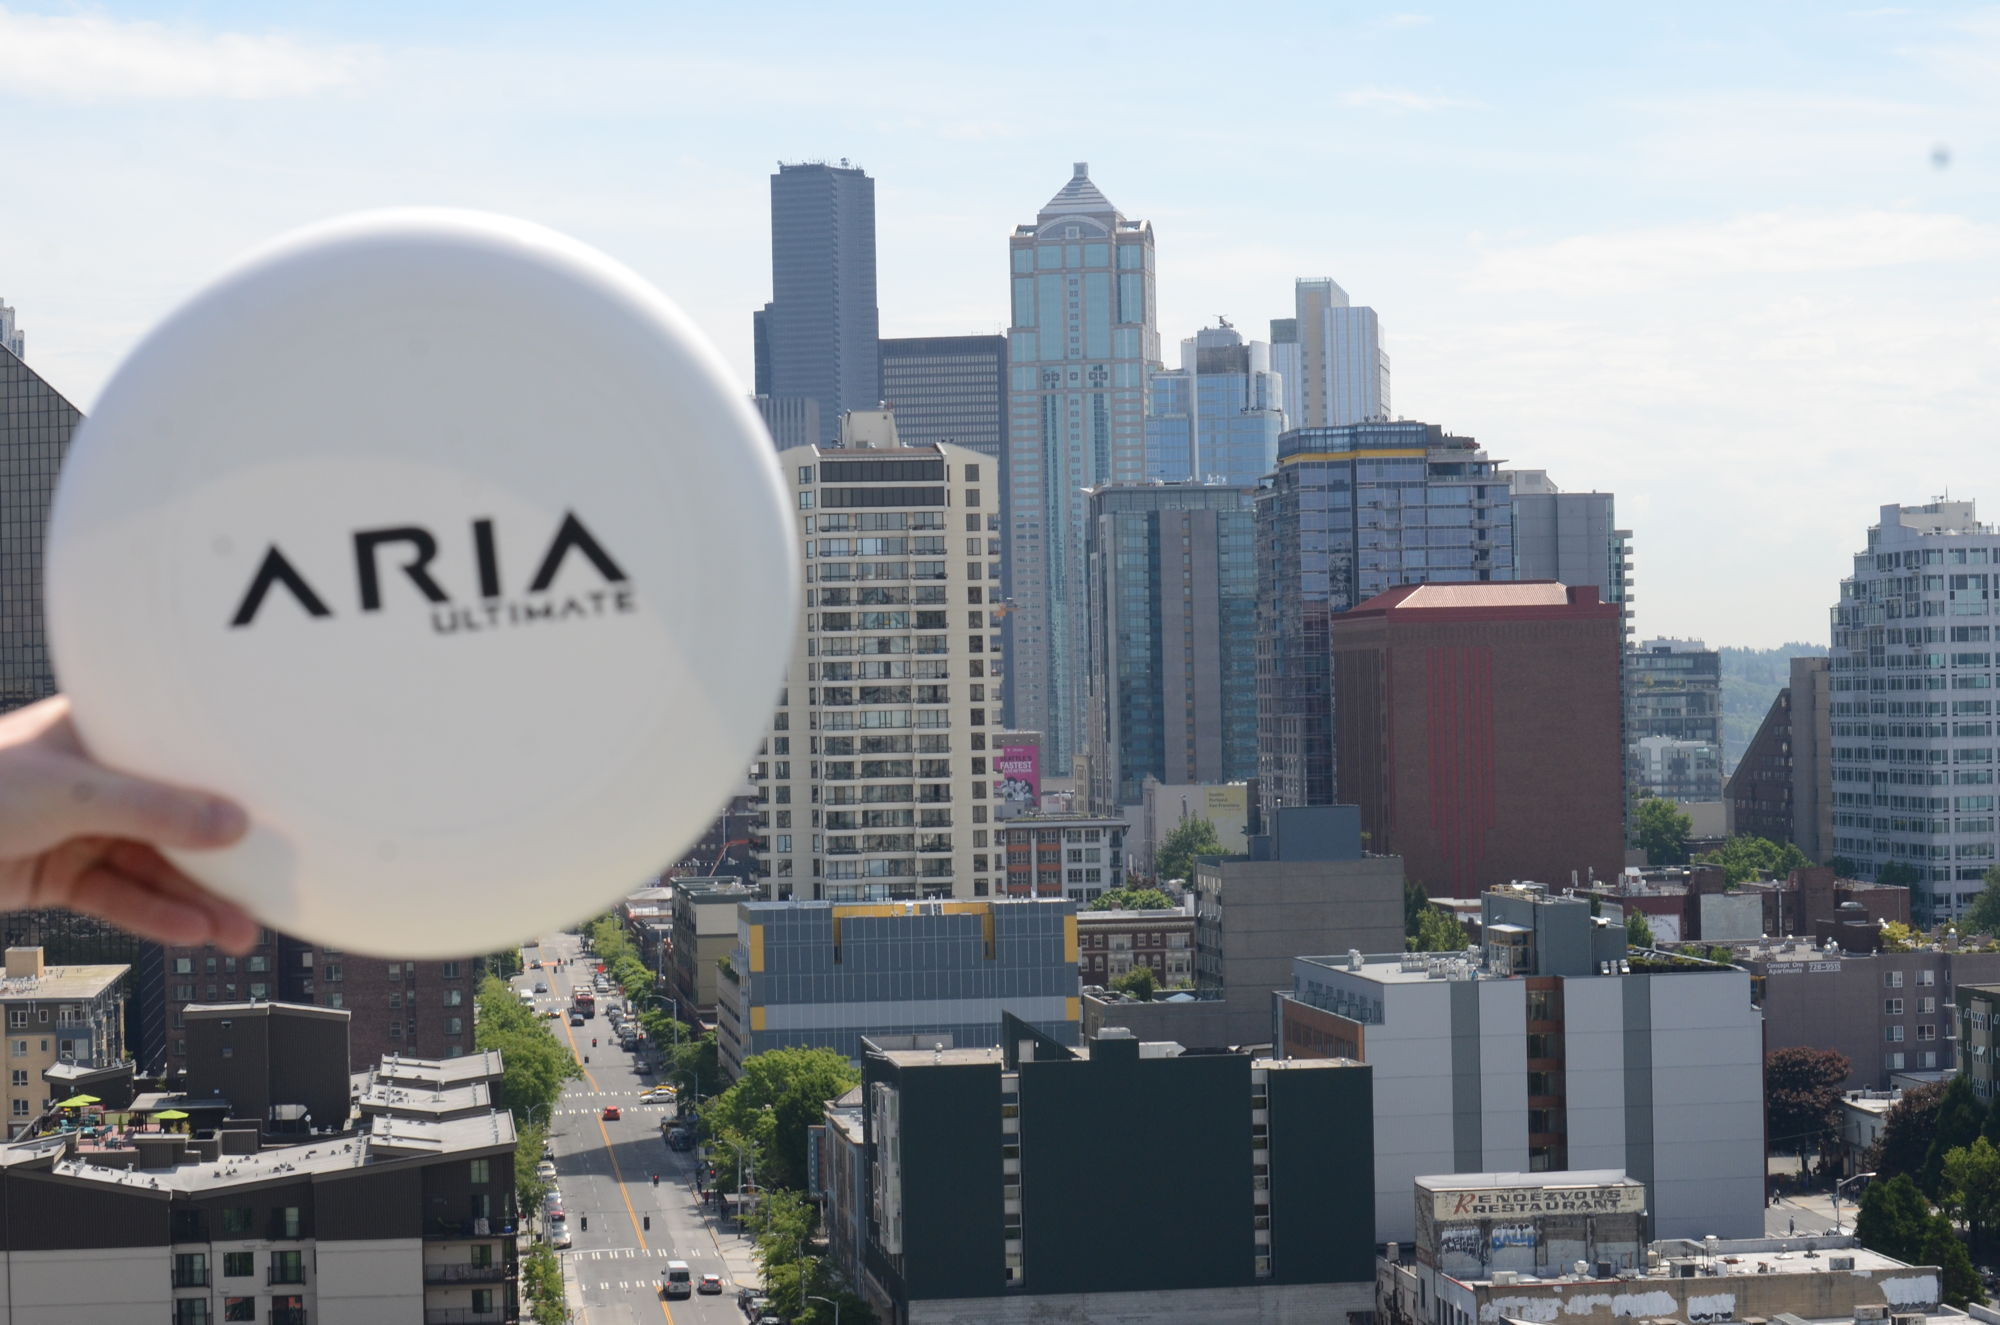 ARIA Ultimate based in Seattle, USA ARIA professional official ultimate flying disc for the sport commonly known as 'ultimate frisbee' goty game of the year